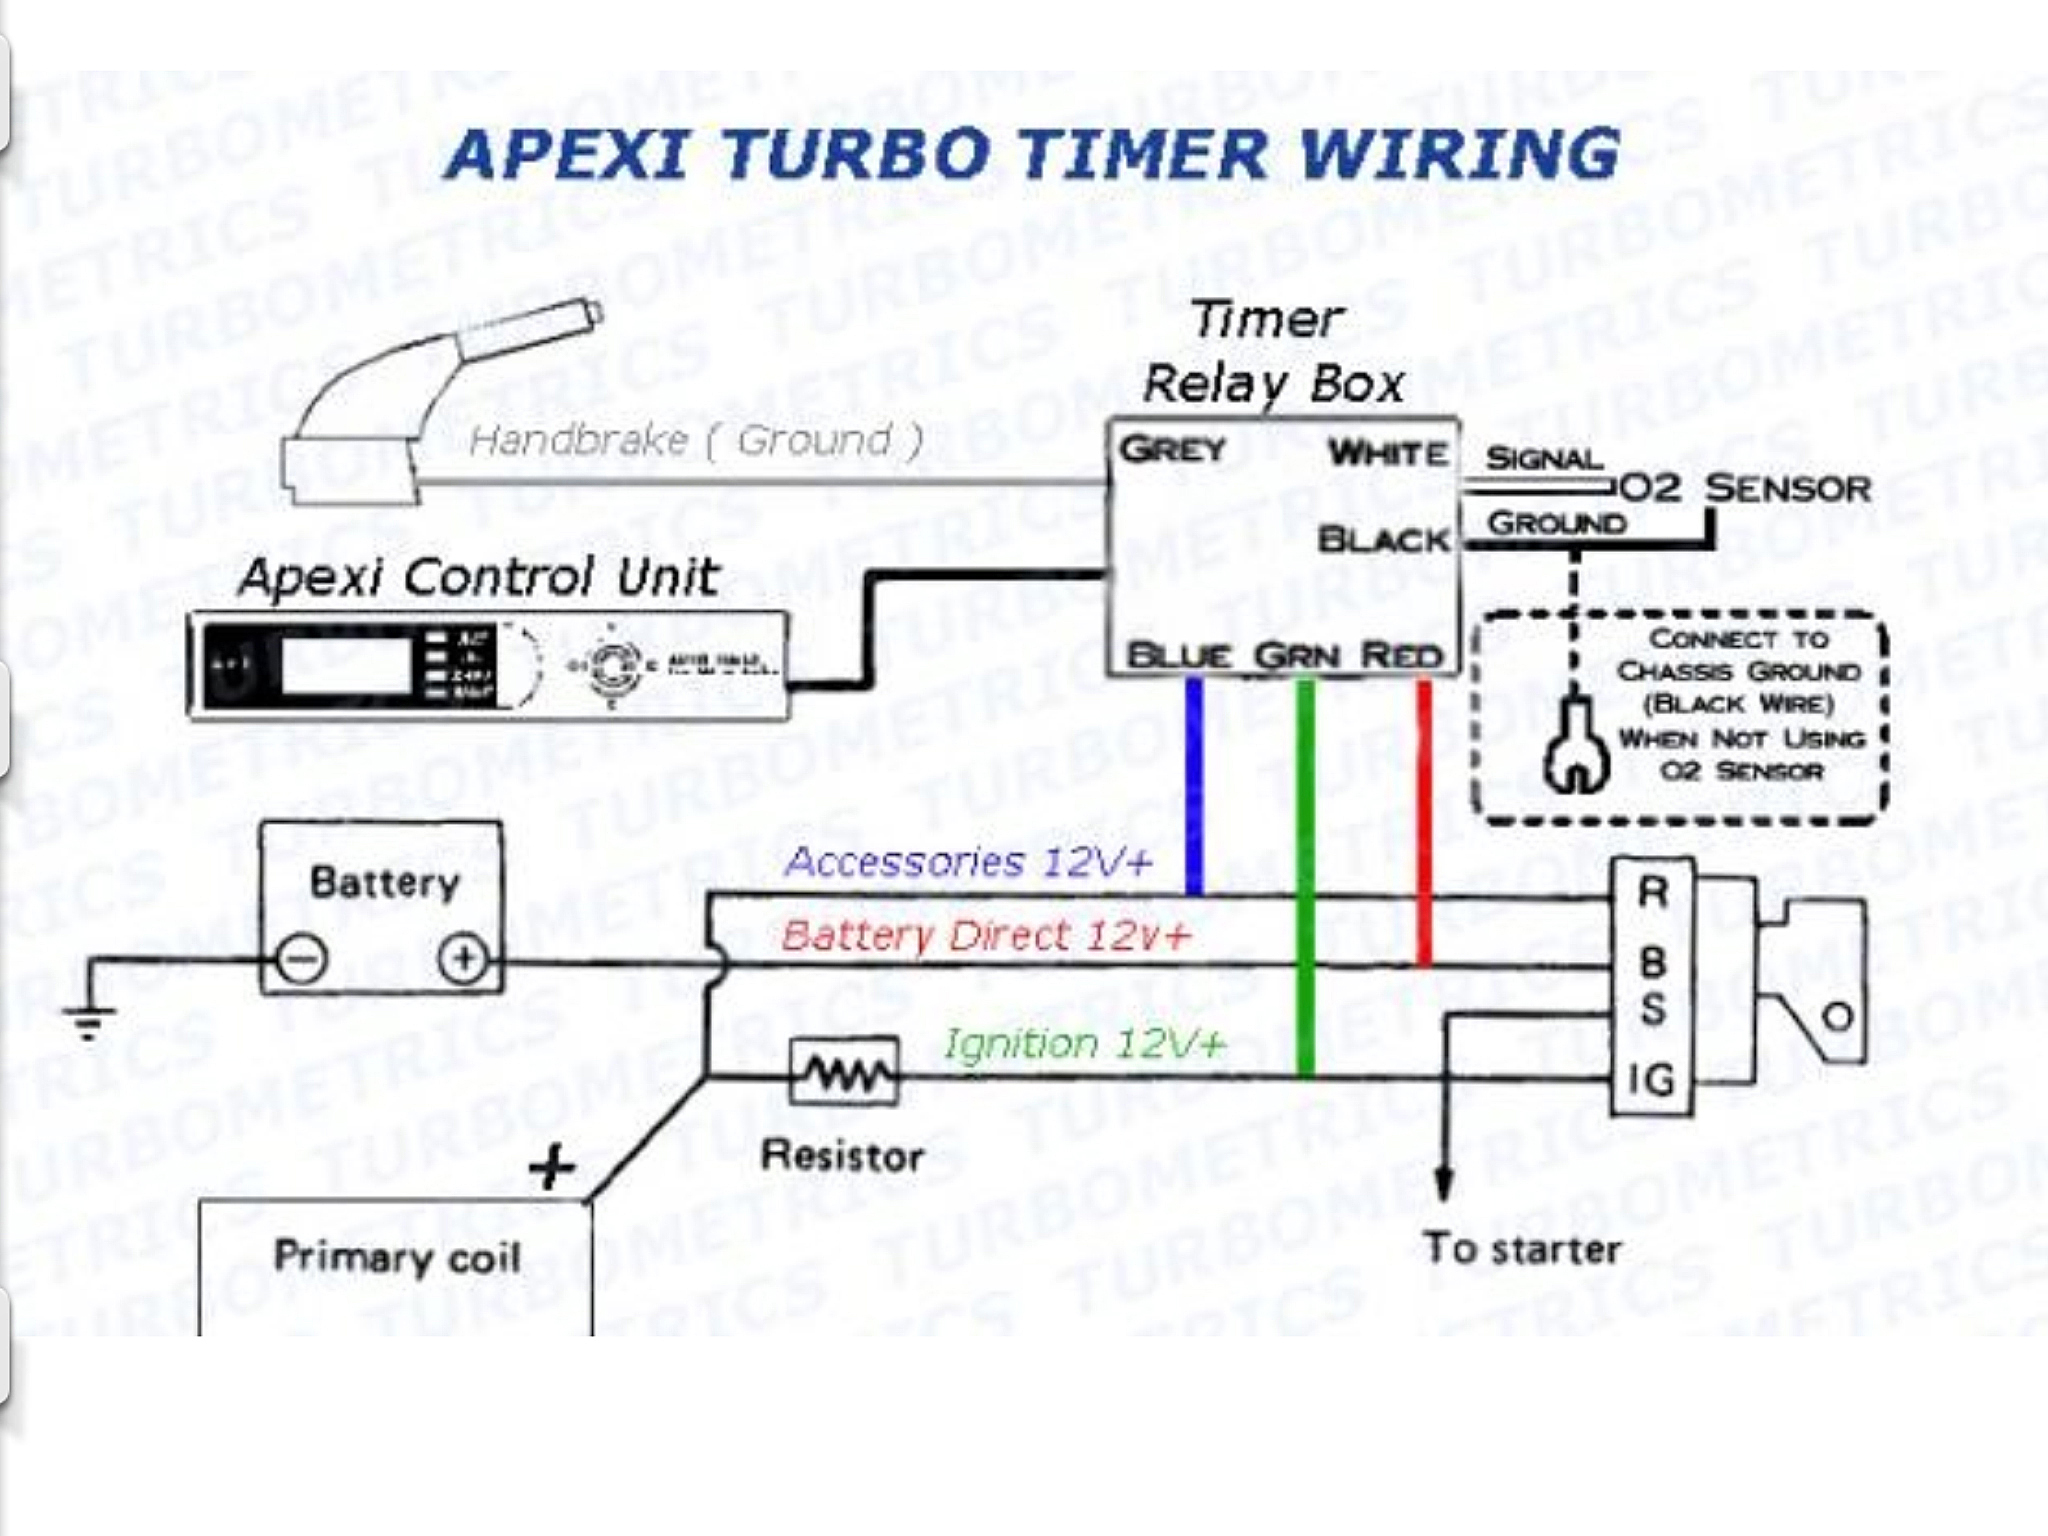 C103 068 5?resize\\\=665%2C499\\\&ssl\\\=1 apexi rsm wiring diagram wiring diagrams apexi rsm wiring diagram honda at aneh.co